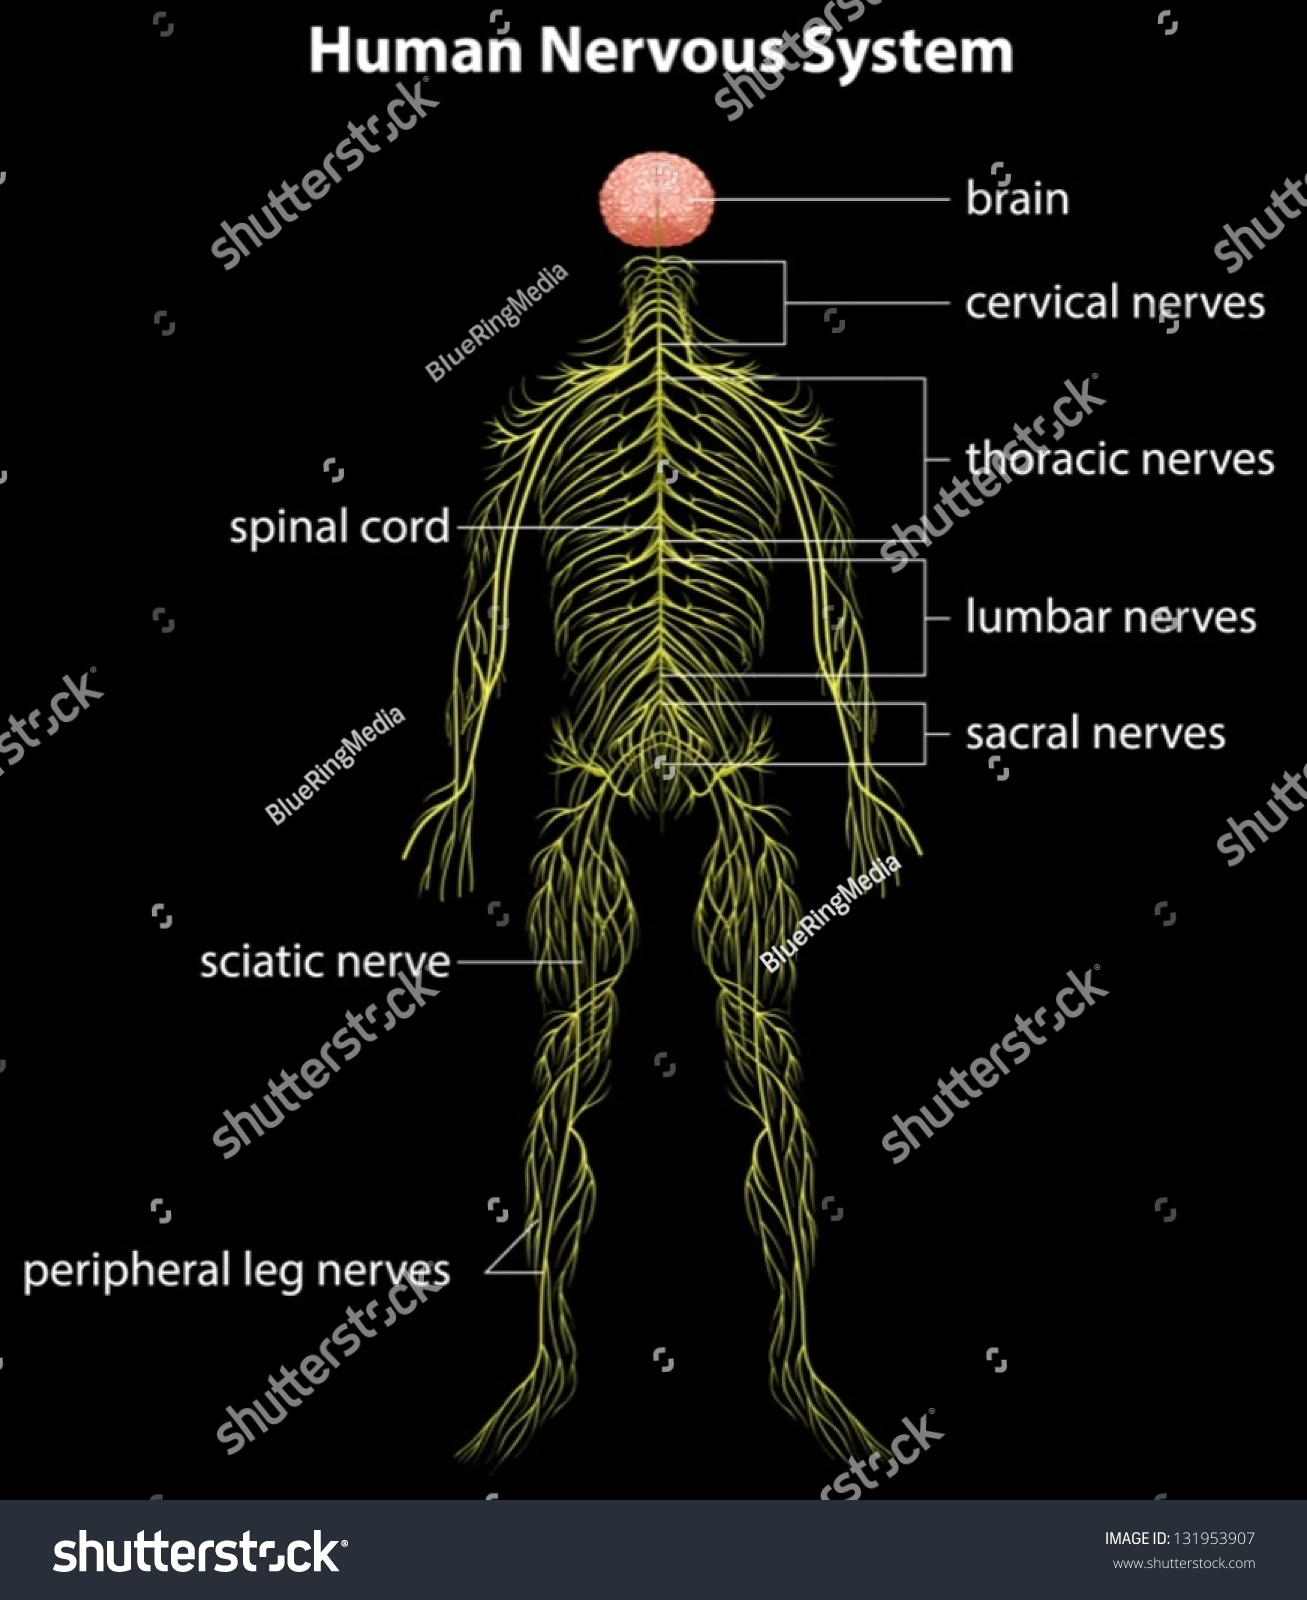 Human nervous system on display - photo#3